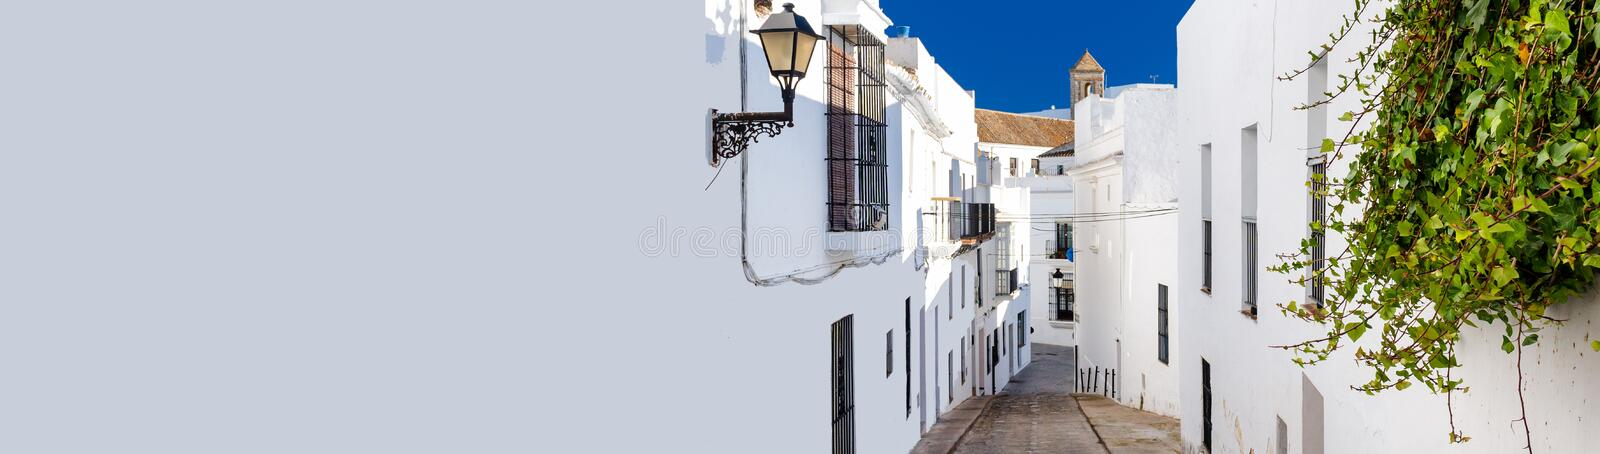 Horizontal cropped image narrow street of Vejer de la Frontera spanish picturesque village stock photography